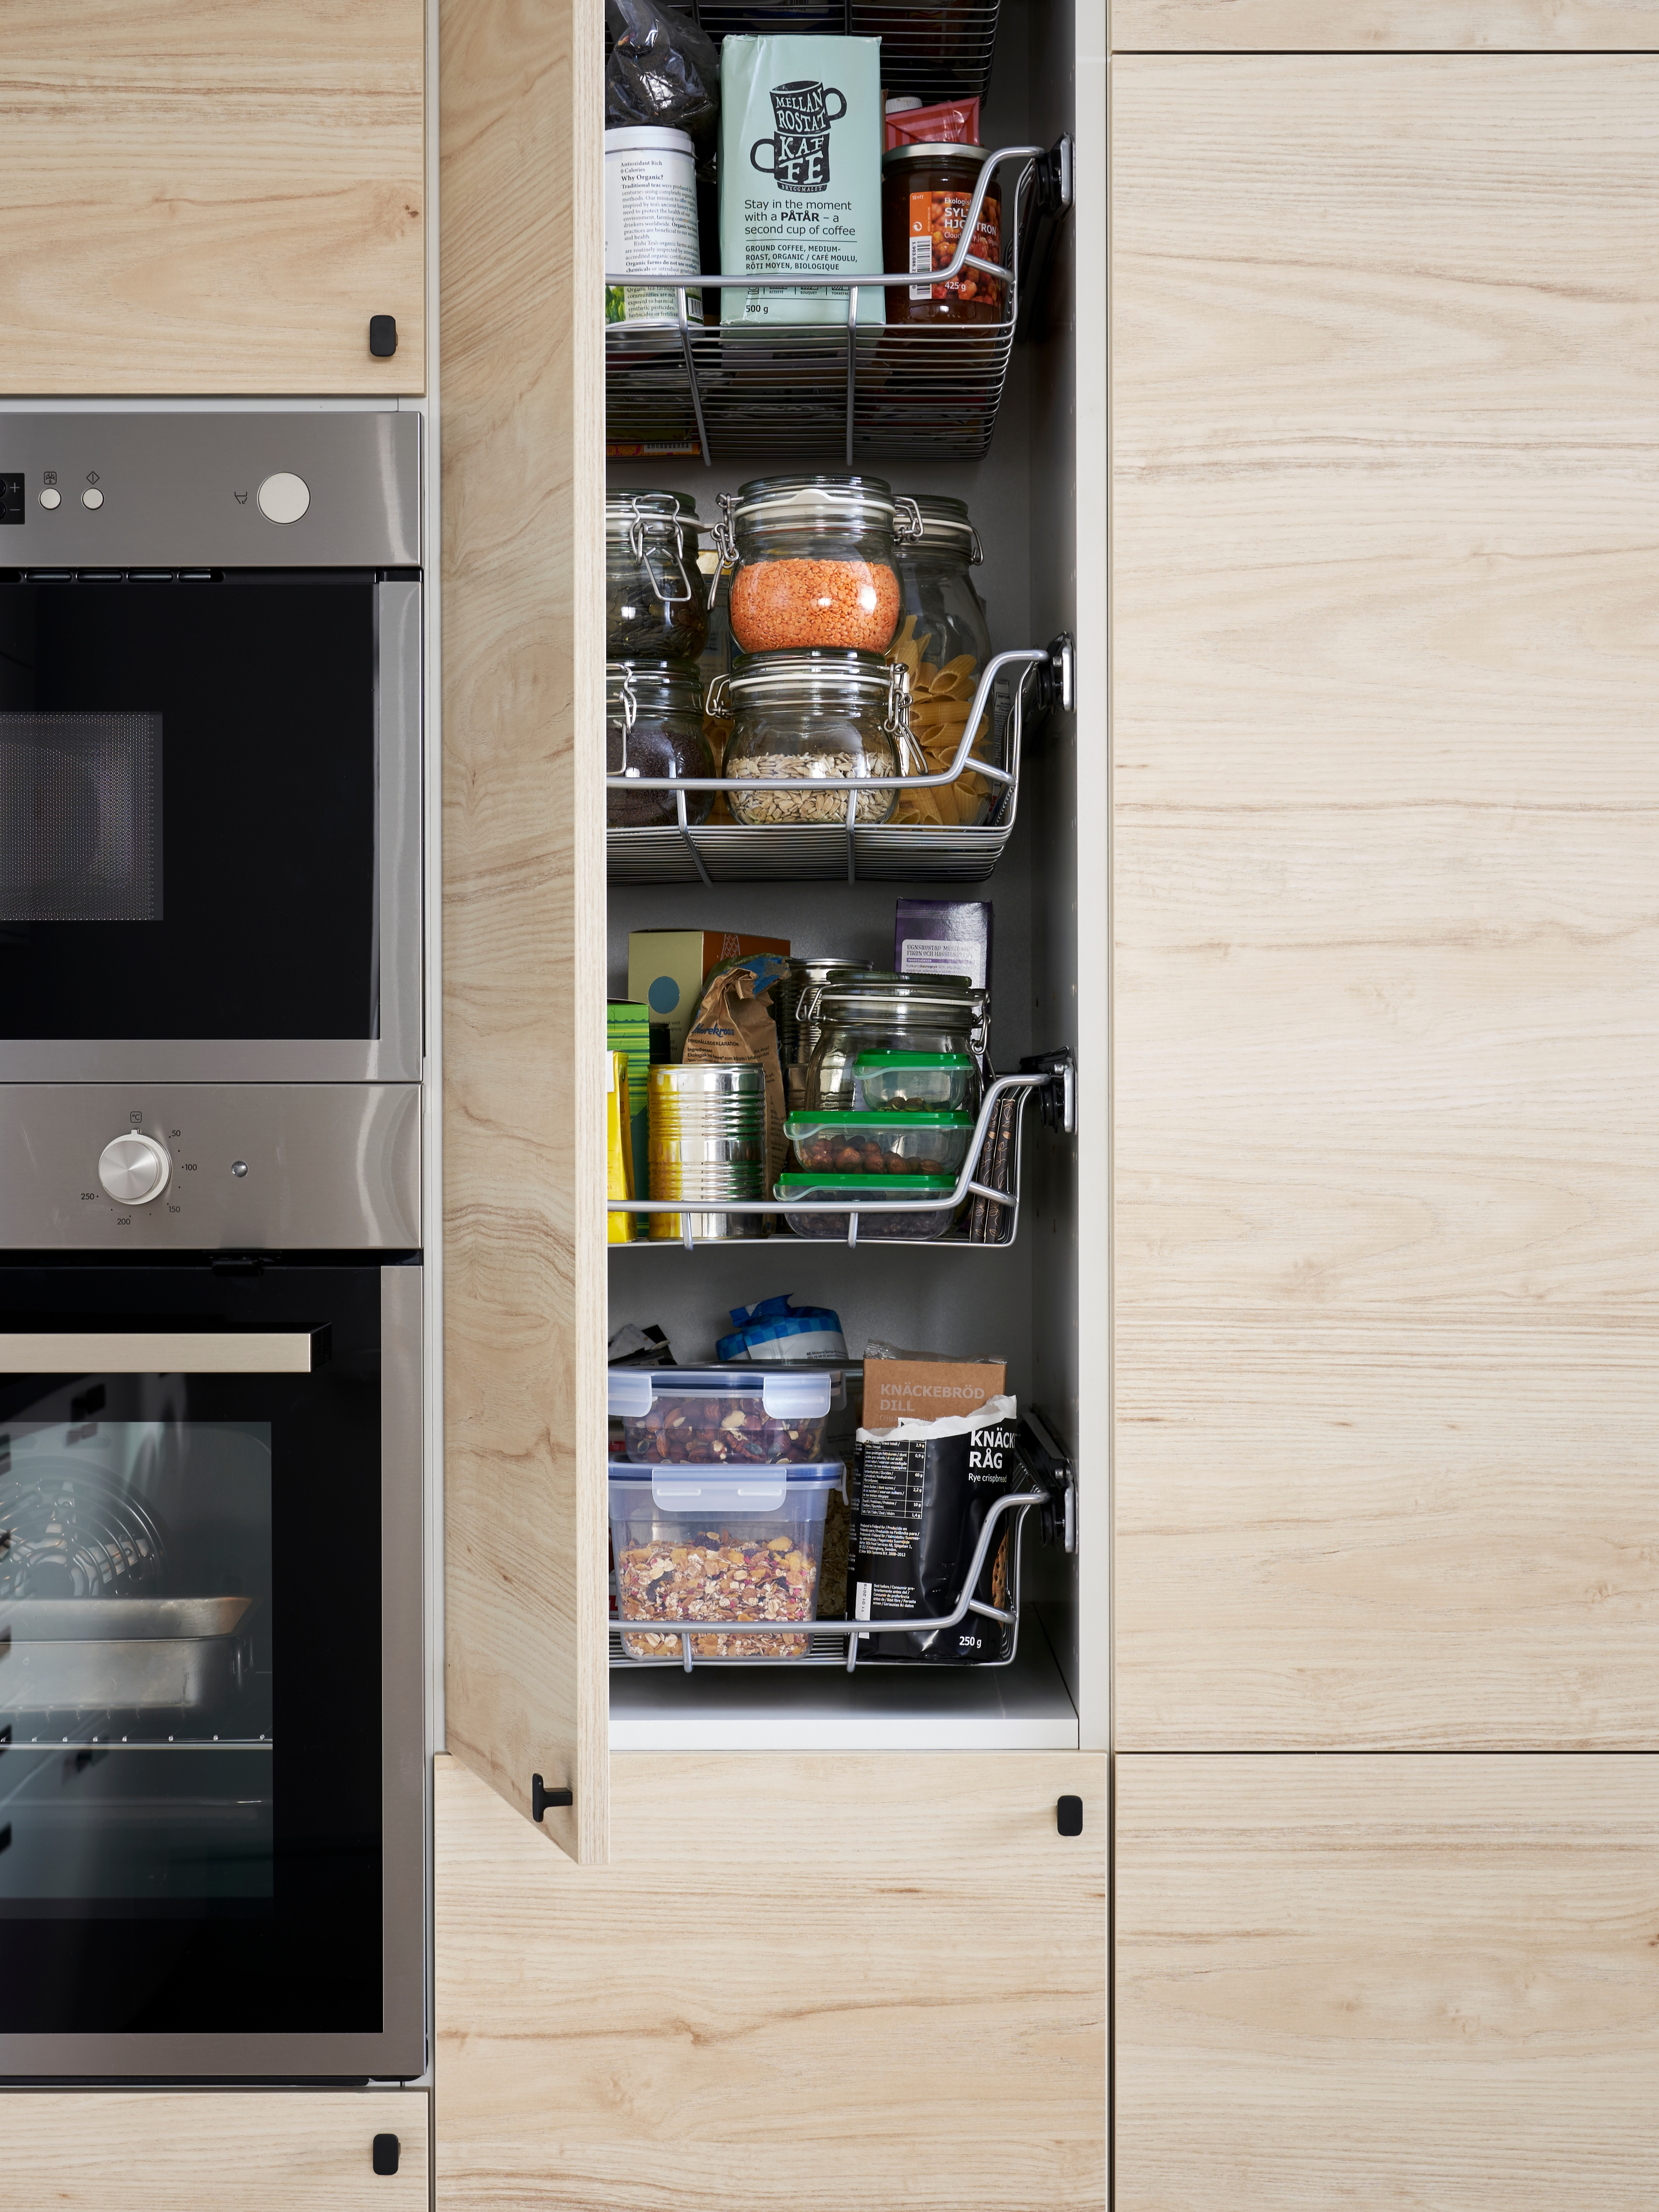 A kitchen with a high, ash effect cabinet door open to show UTRUSTA wire baskets filled with different foods and containers.